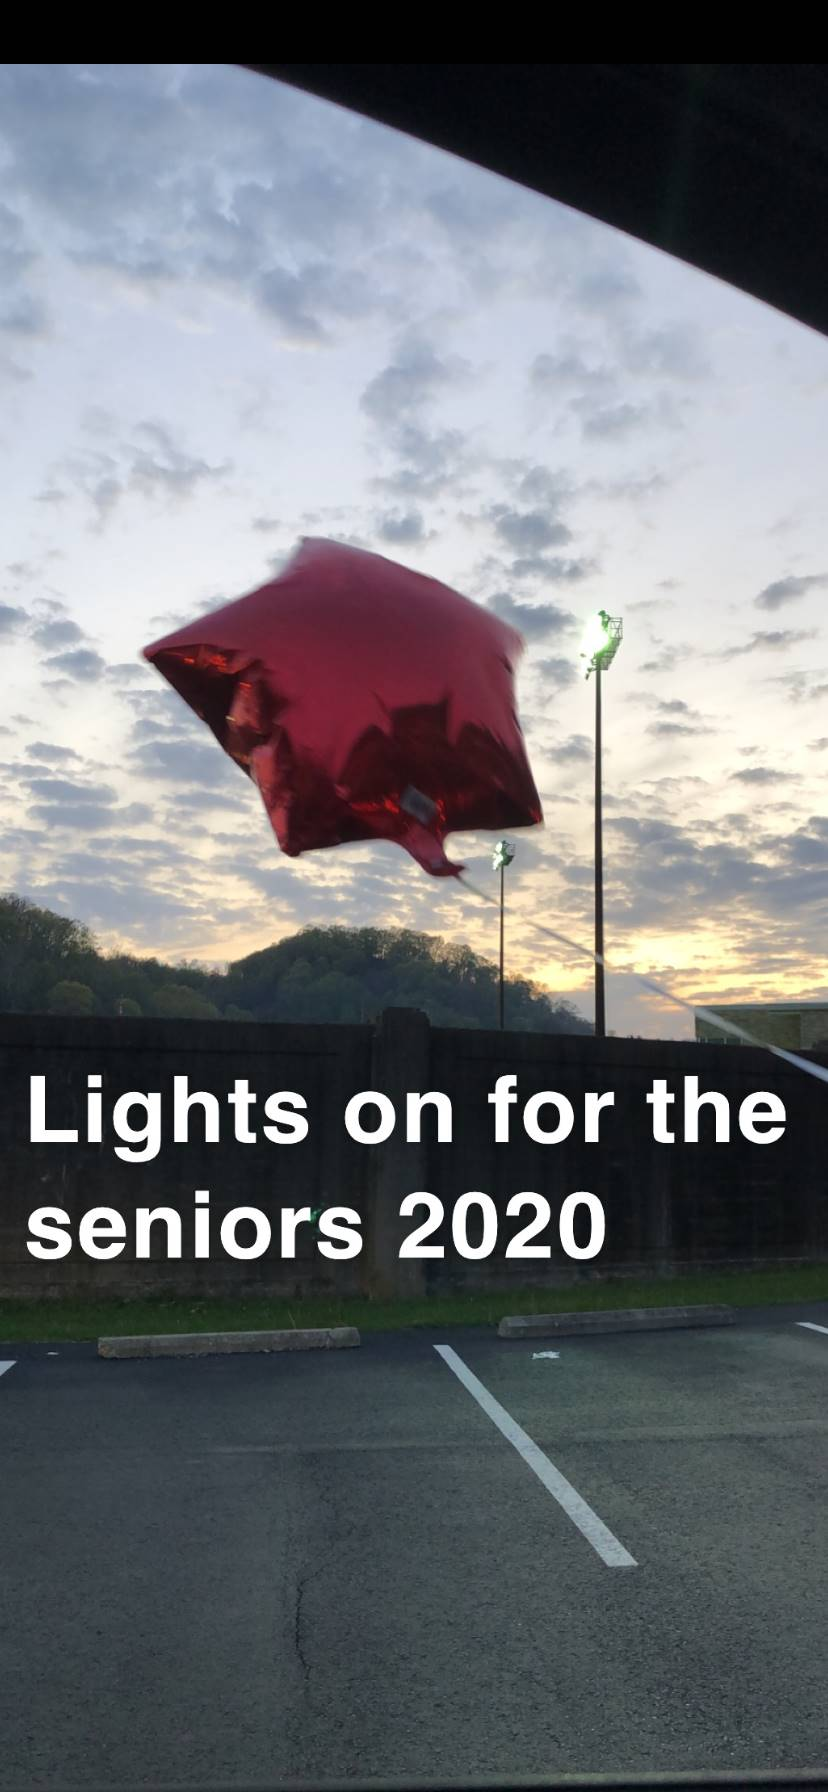 lights on for the seniors 2020